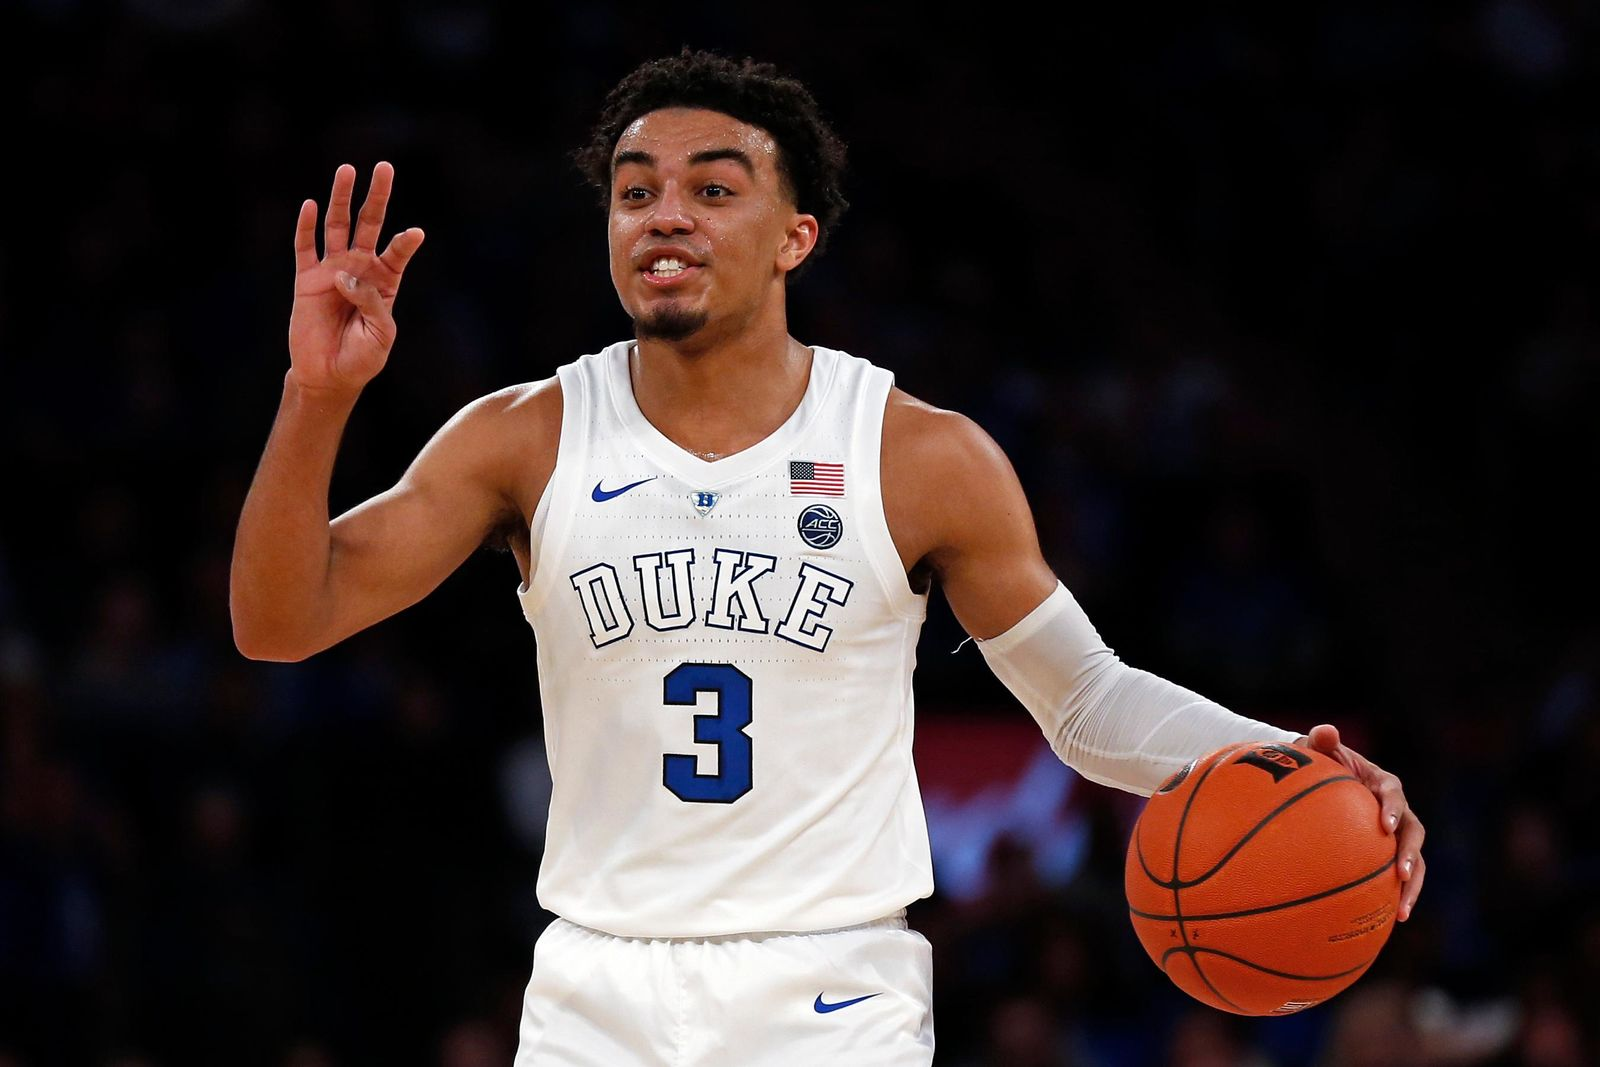 FILE - In this Dec. 20, 2018, file photo, Duke guard Tre Jones gestures to teammates during the first half of the team's NCAA college basketball game against Texas Tech in New York. Duke has regained the top spot in The Associated Press Top 25 following a win over No. 12 Texas Tech at Madison Square Garden. (AP Photo/Adam Hunger, File)